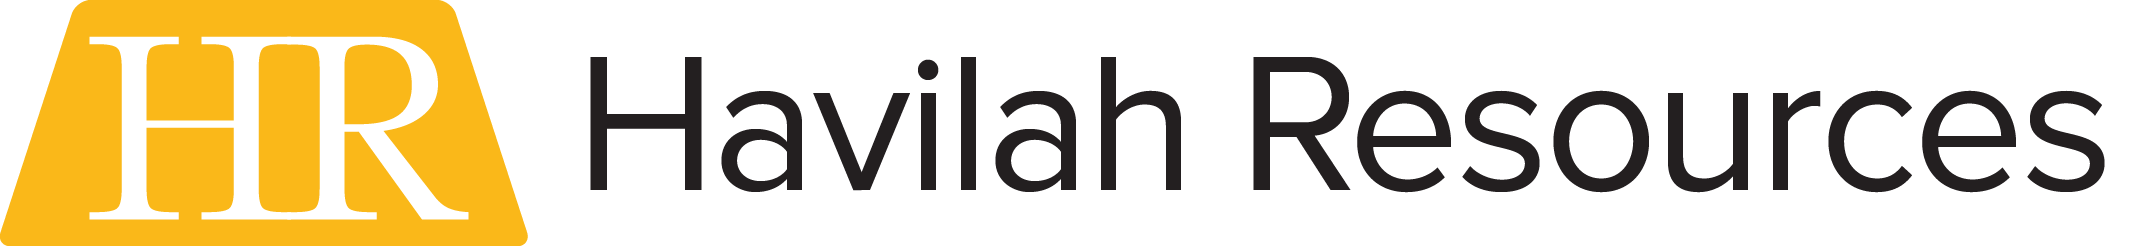 Havilah Resources Limited (HAV:ASX) logo